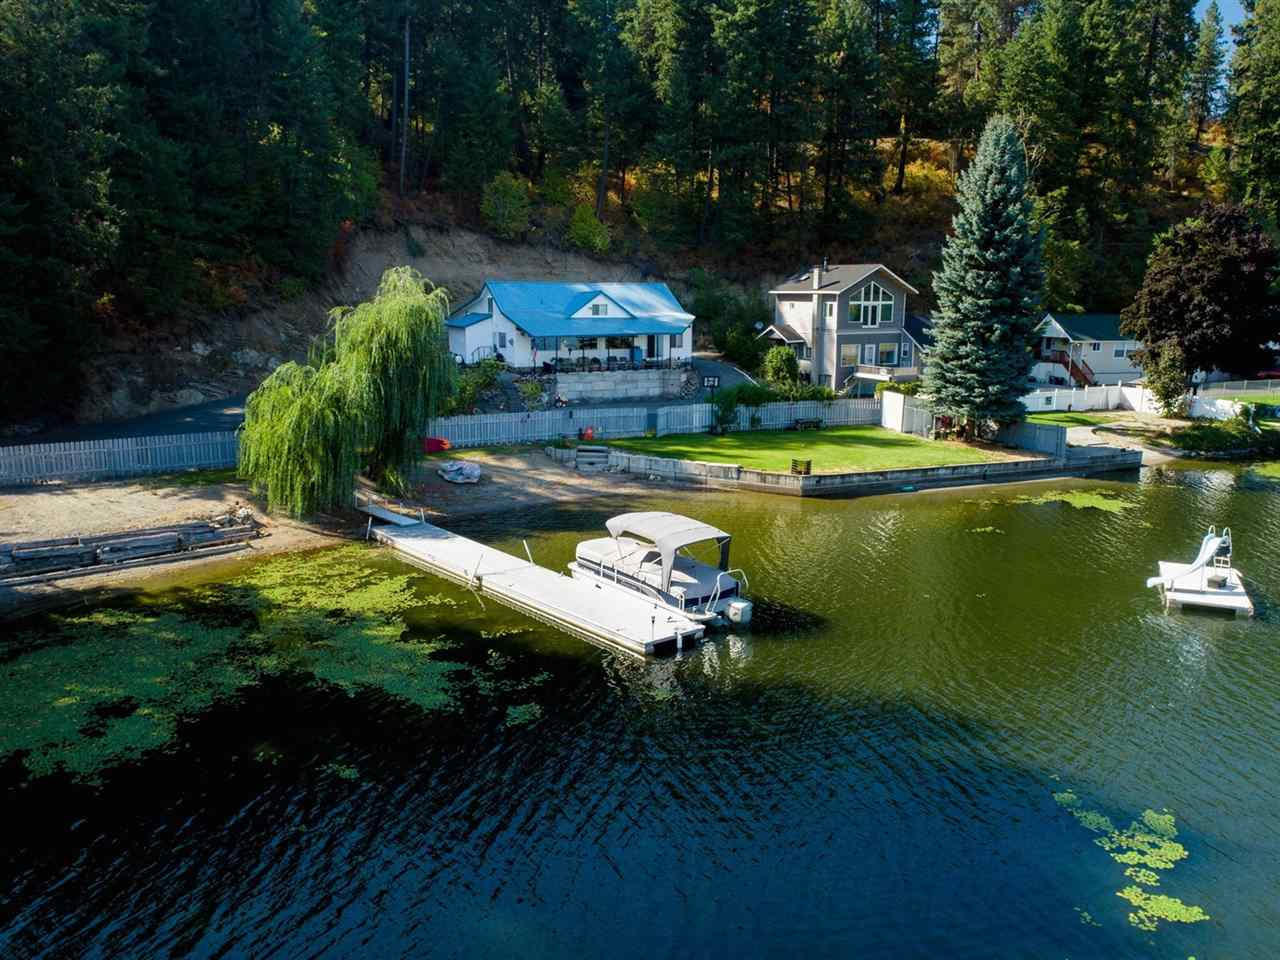 Single Family Home for Sale at 11401 N Honeymoon Bay Road 11401 N Honeymoon Bay Road Newman Lake, Washington 99025 United States